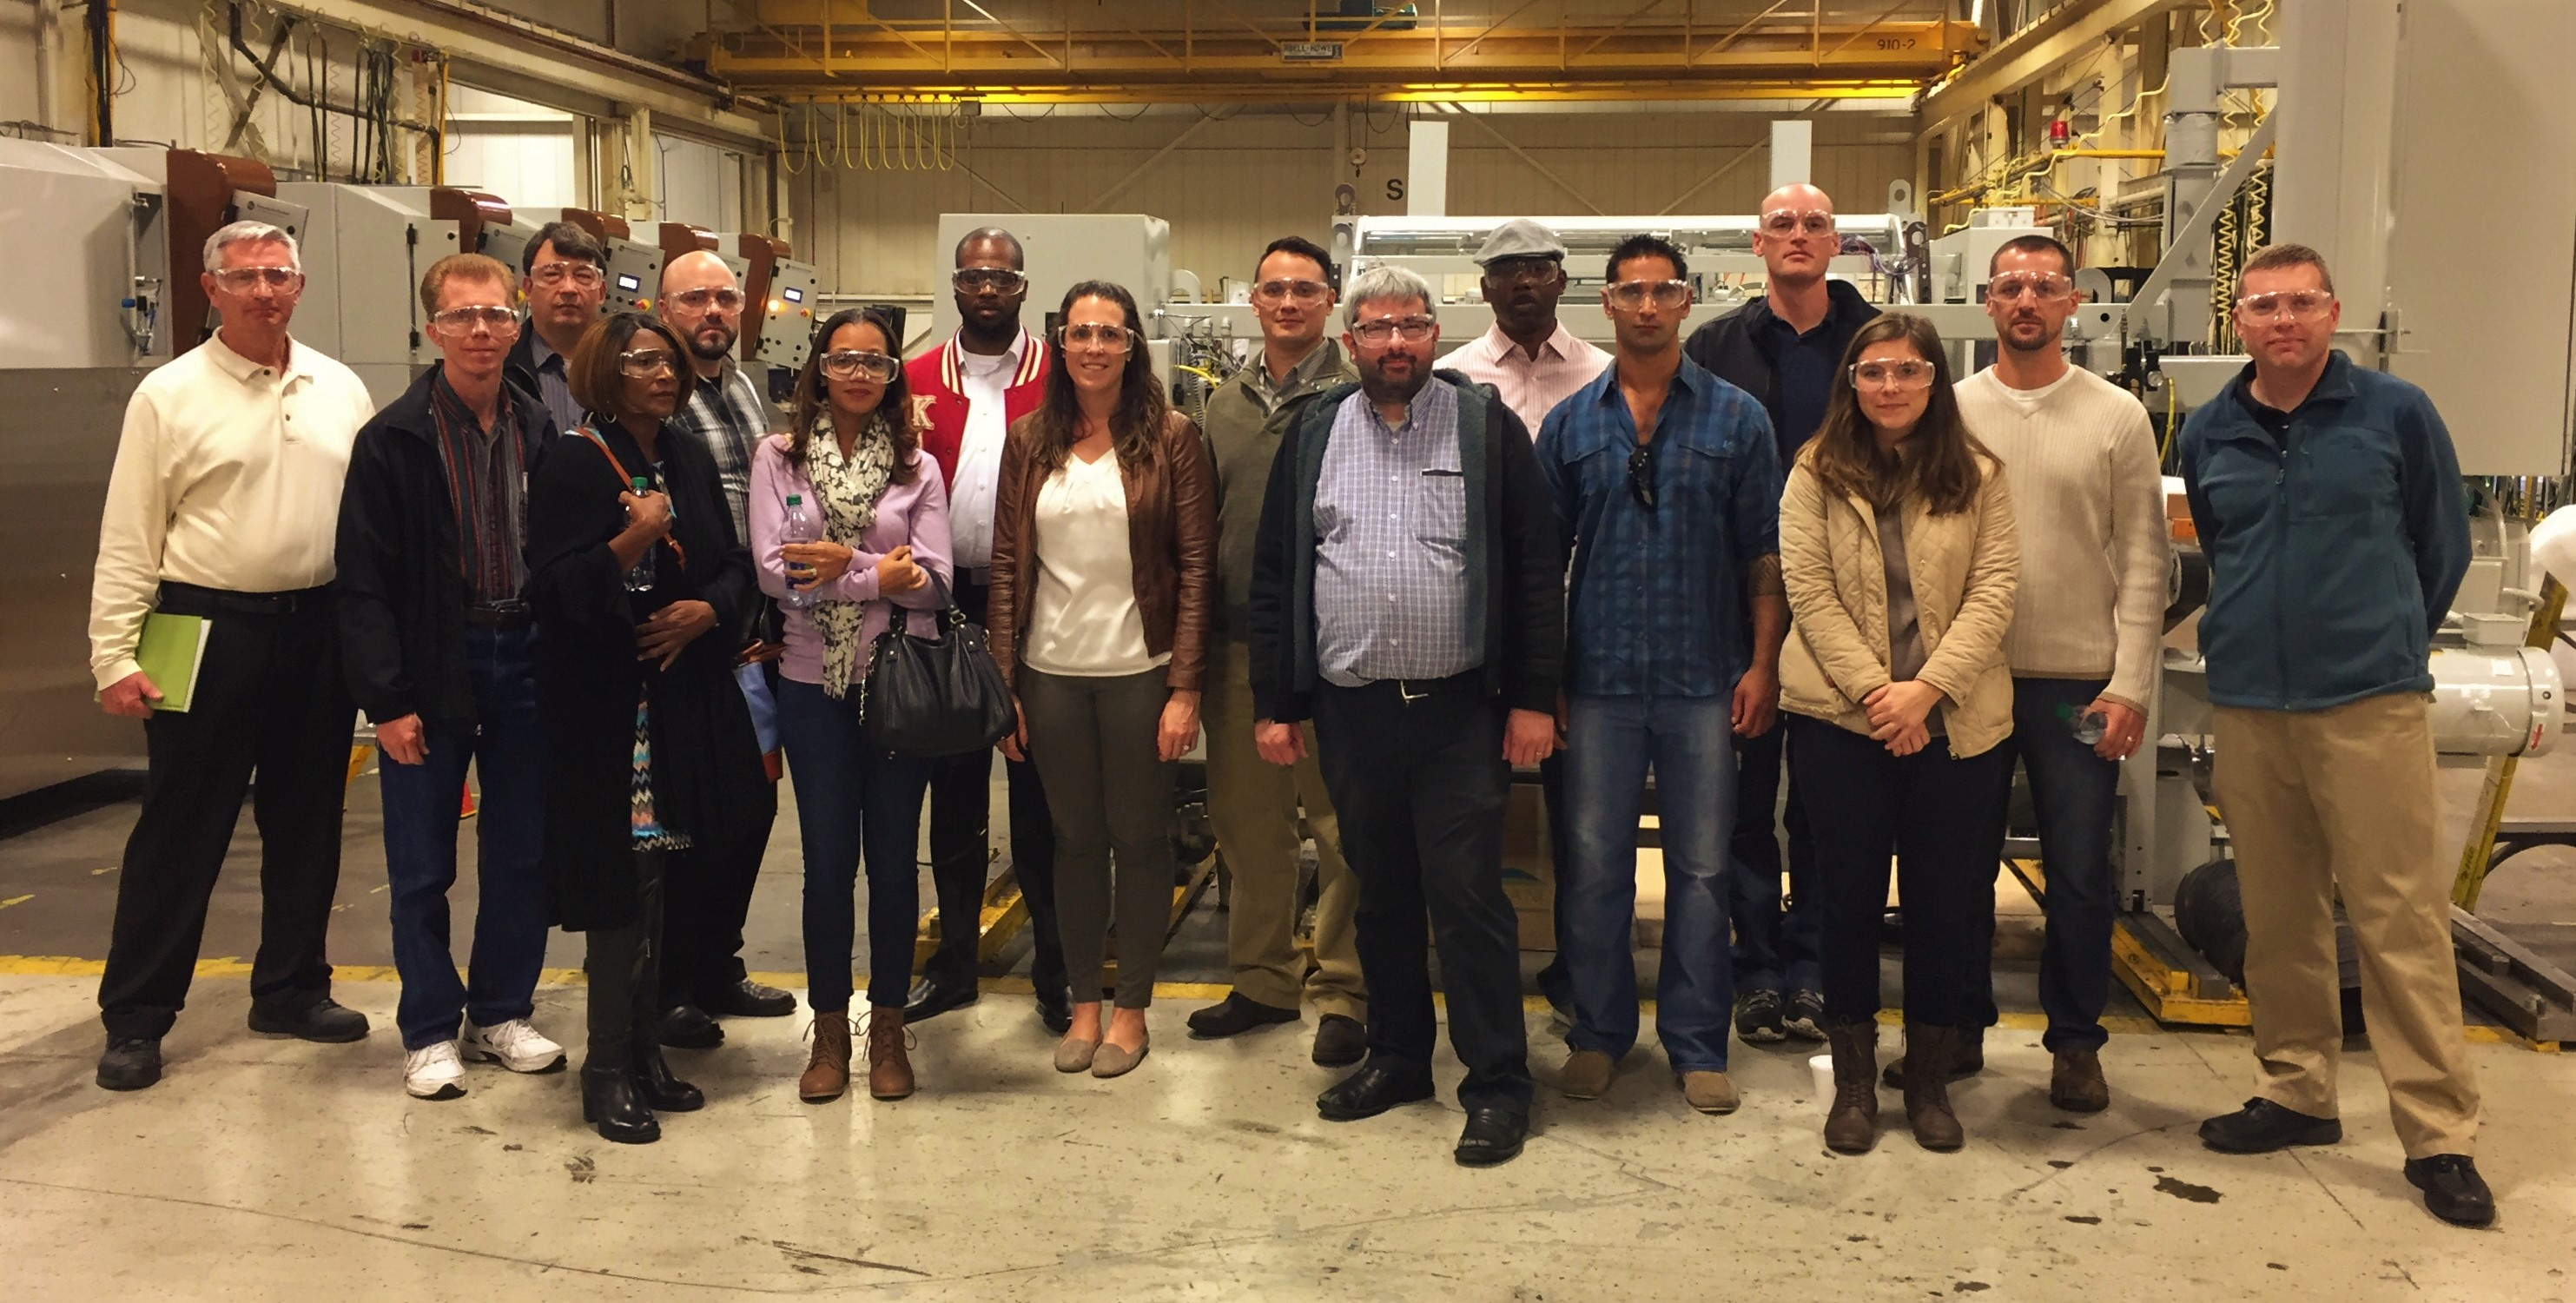 Lean Six Sigma Black Belt candidates from Aberdeen Proving Ground, Maryland, tour the Marquip Ward United factory Nov. 16, 2016, in Hunt Valley, Maryland. (Photo Credit: Photo by Wade McCartin, Marquip Ward United)